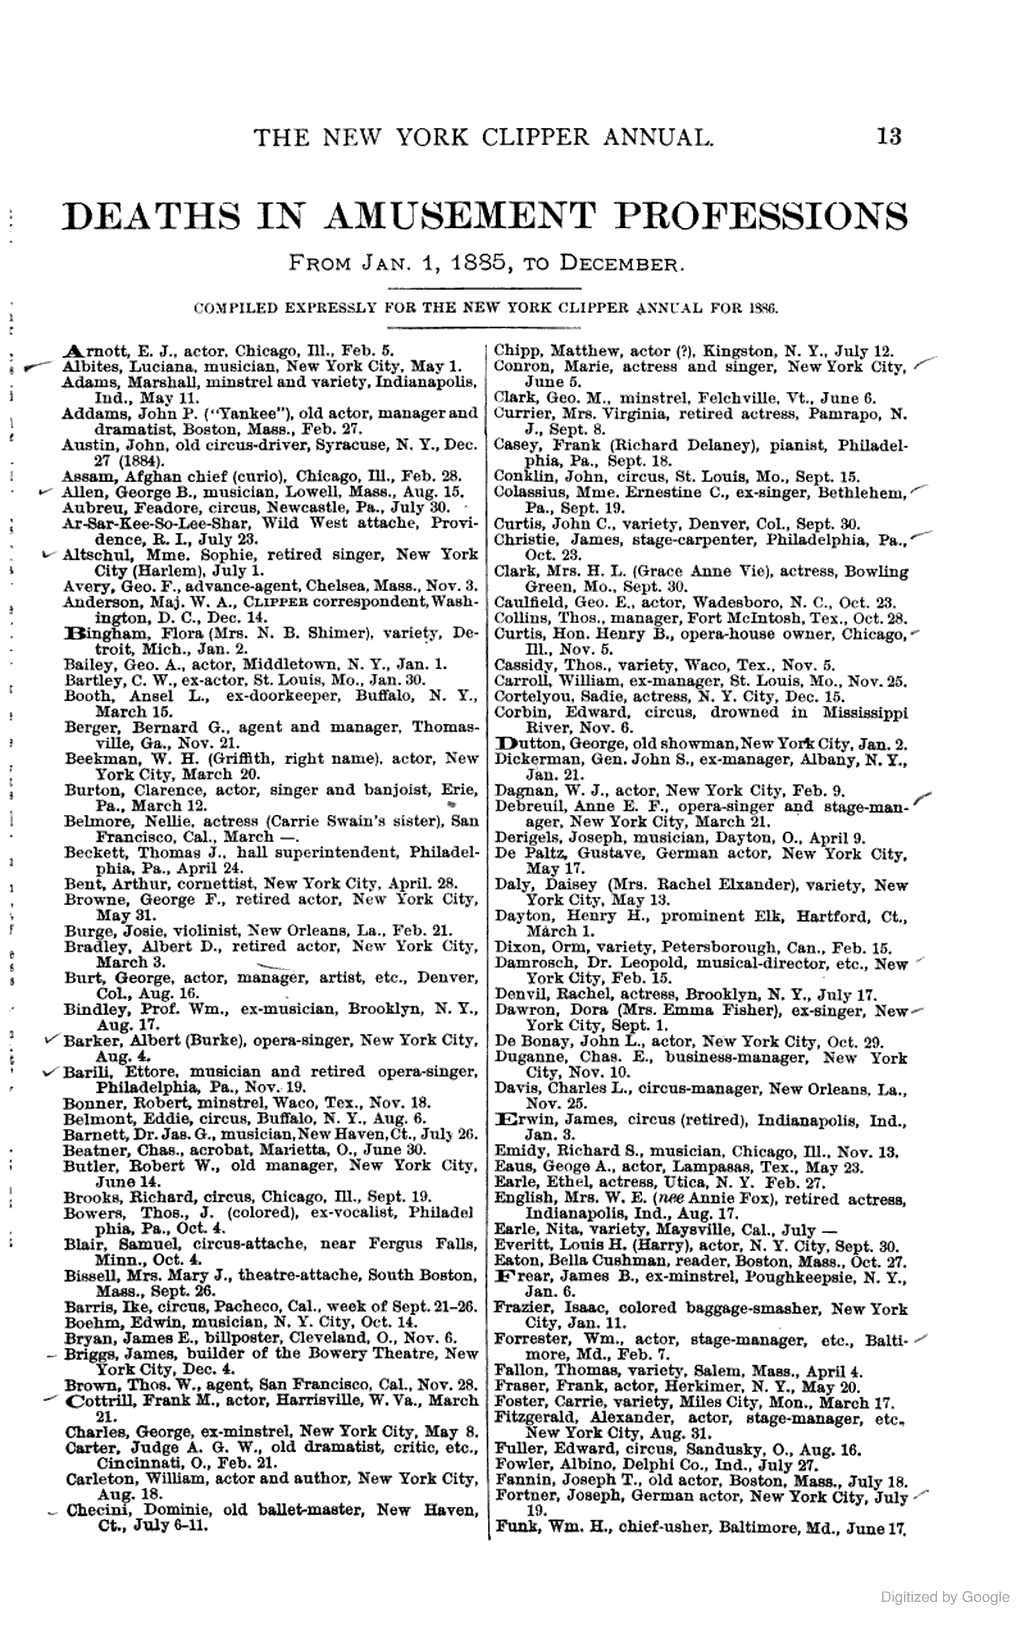 James Briggs, Builder of the Bowery Theater, died 1885.  The New York Clipper Annual ... Containing Theatrical, Musical and Sporting Chronologies ...